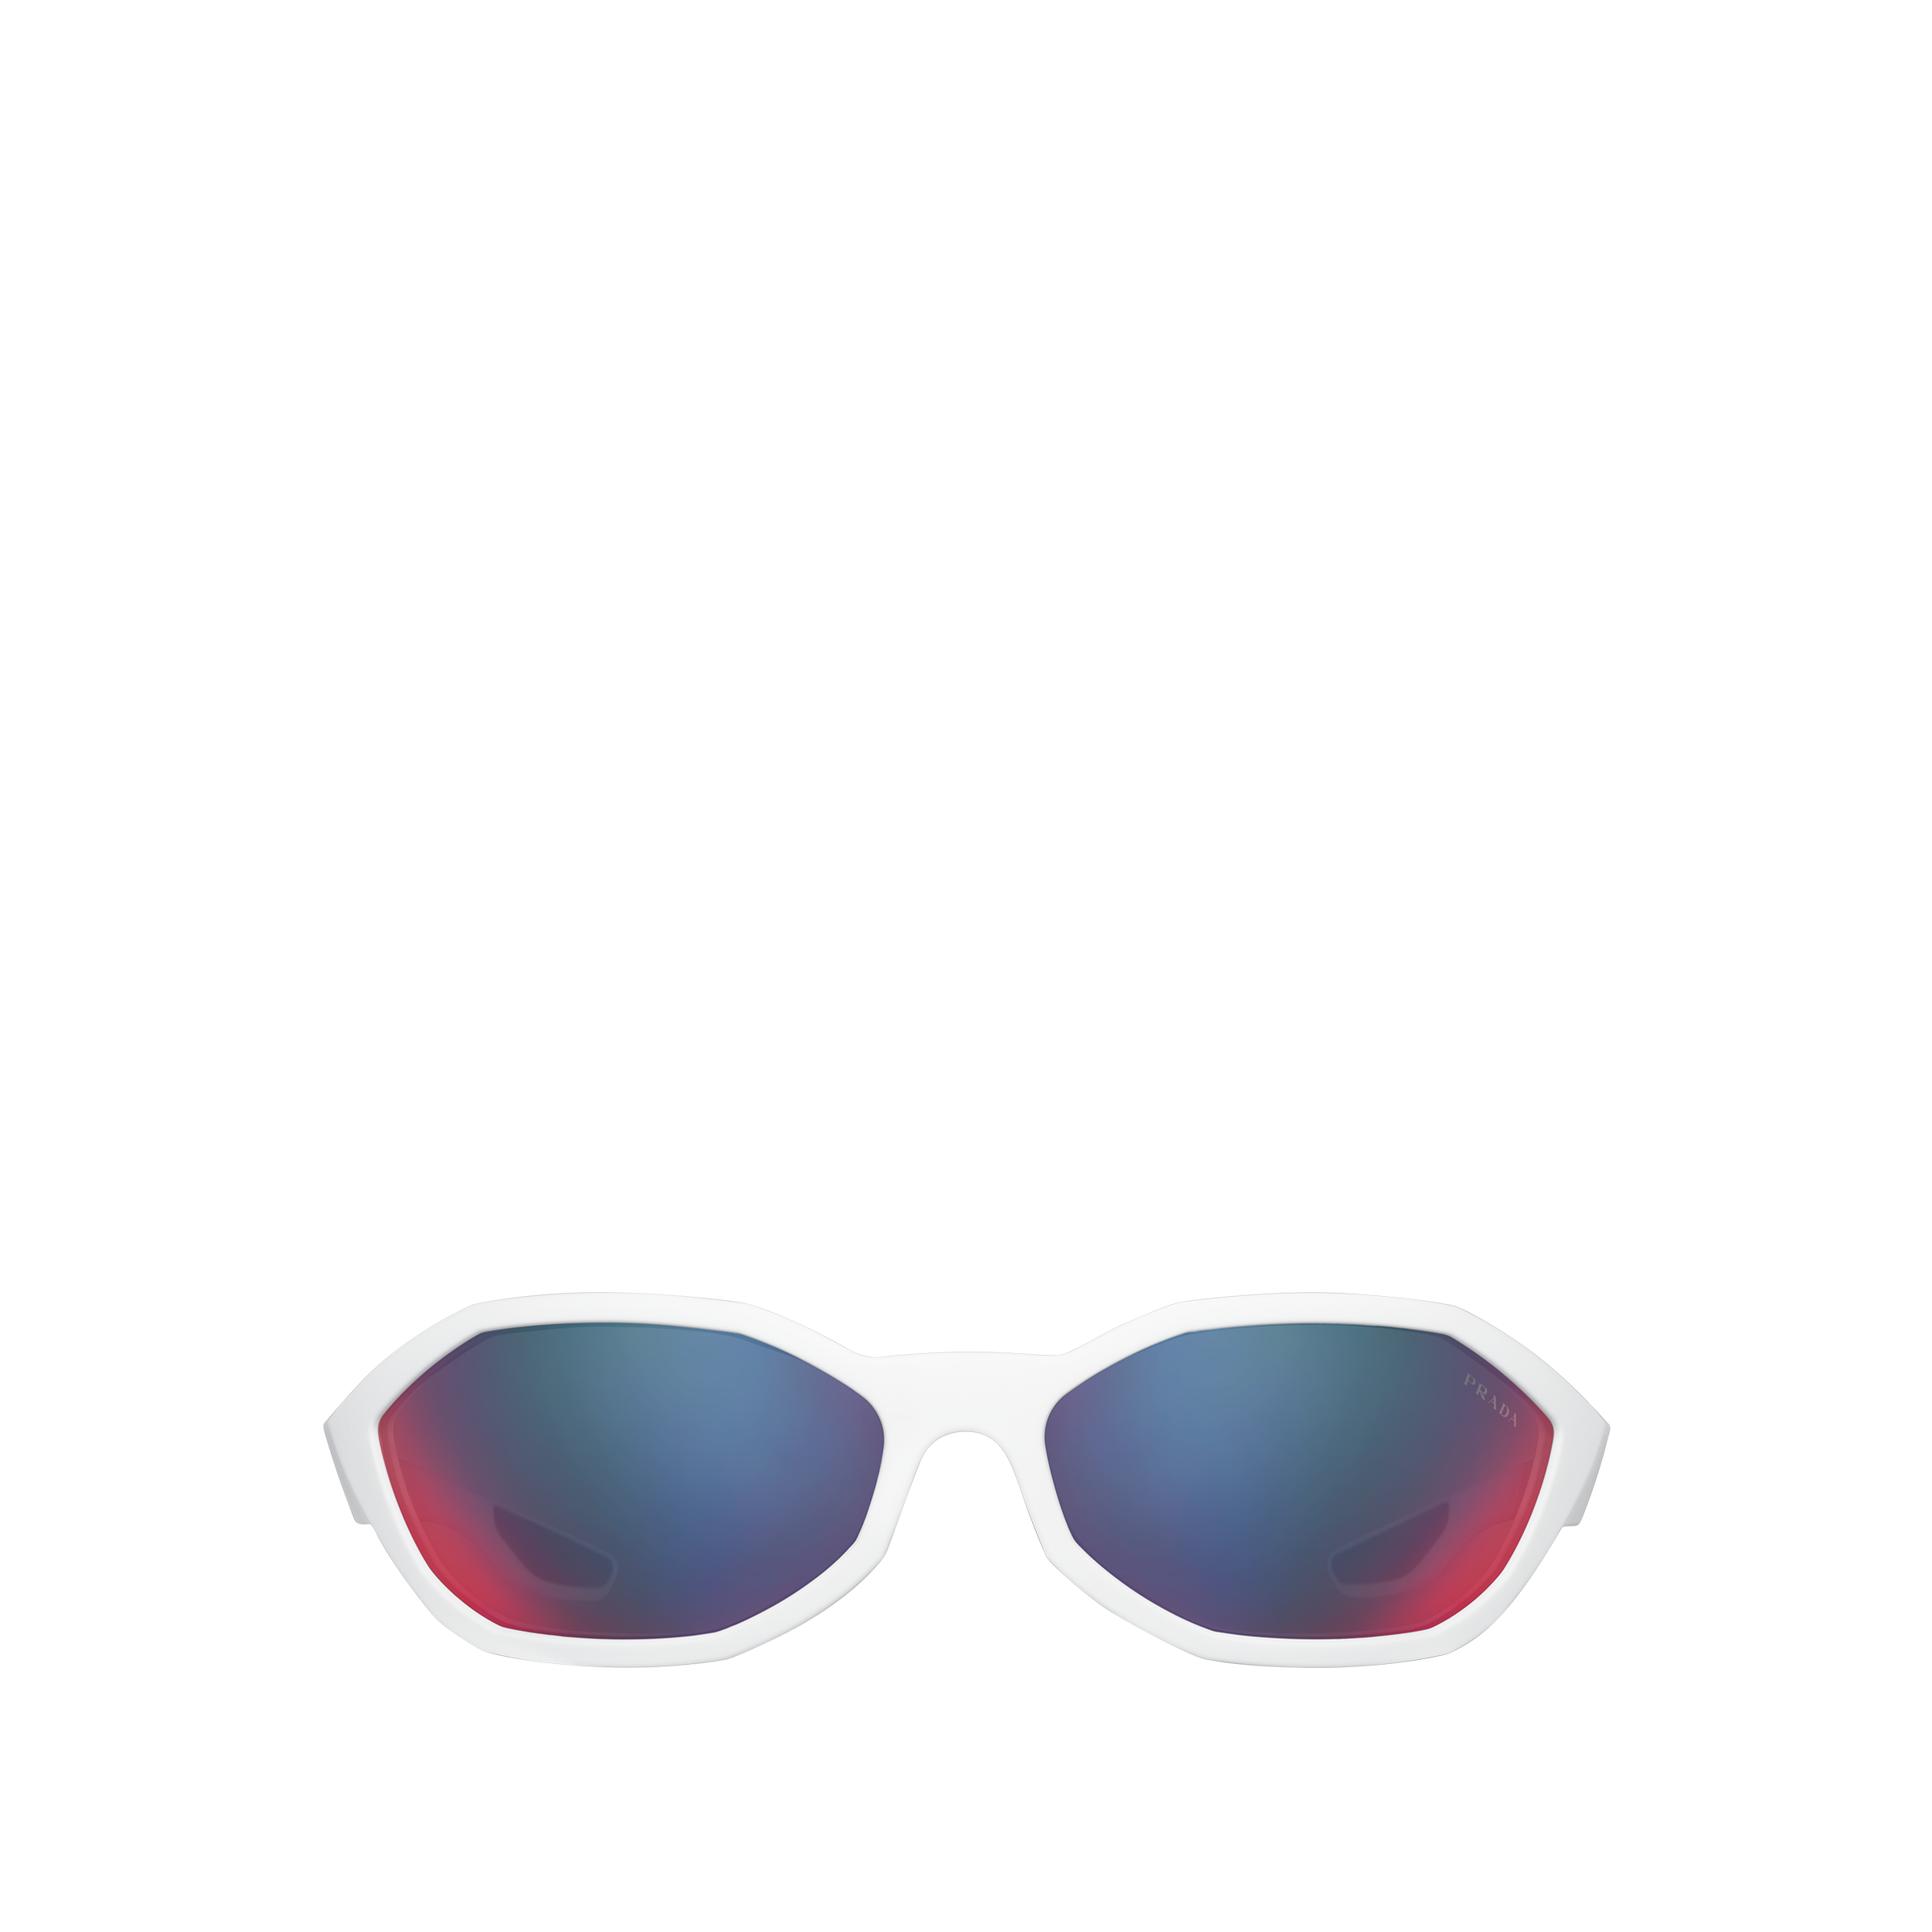 e9ea2782e1ac7 Men s Sunglasses